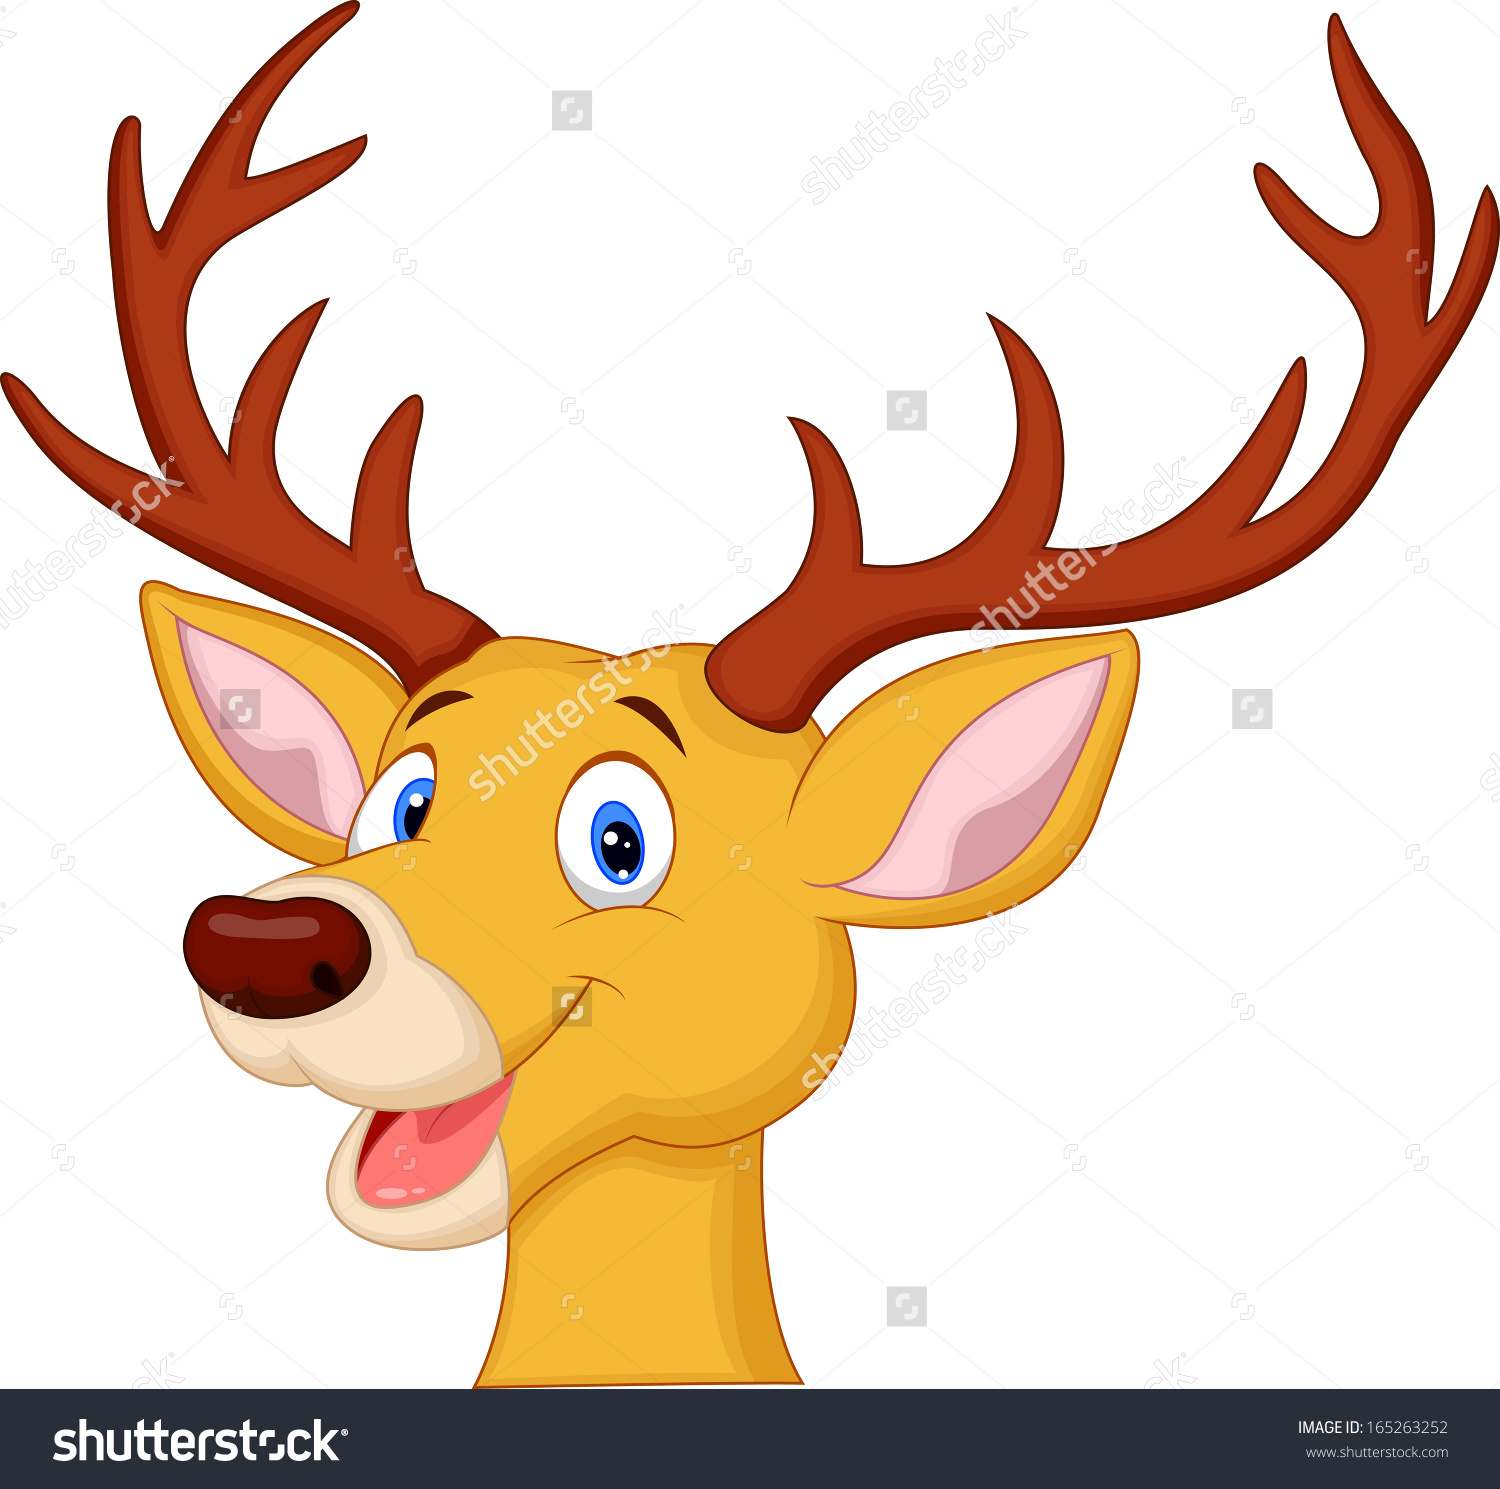 1500x1489 Deer Clipart, Suggestions For Deer Clipart, Download Deer Clipart